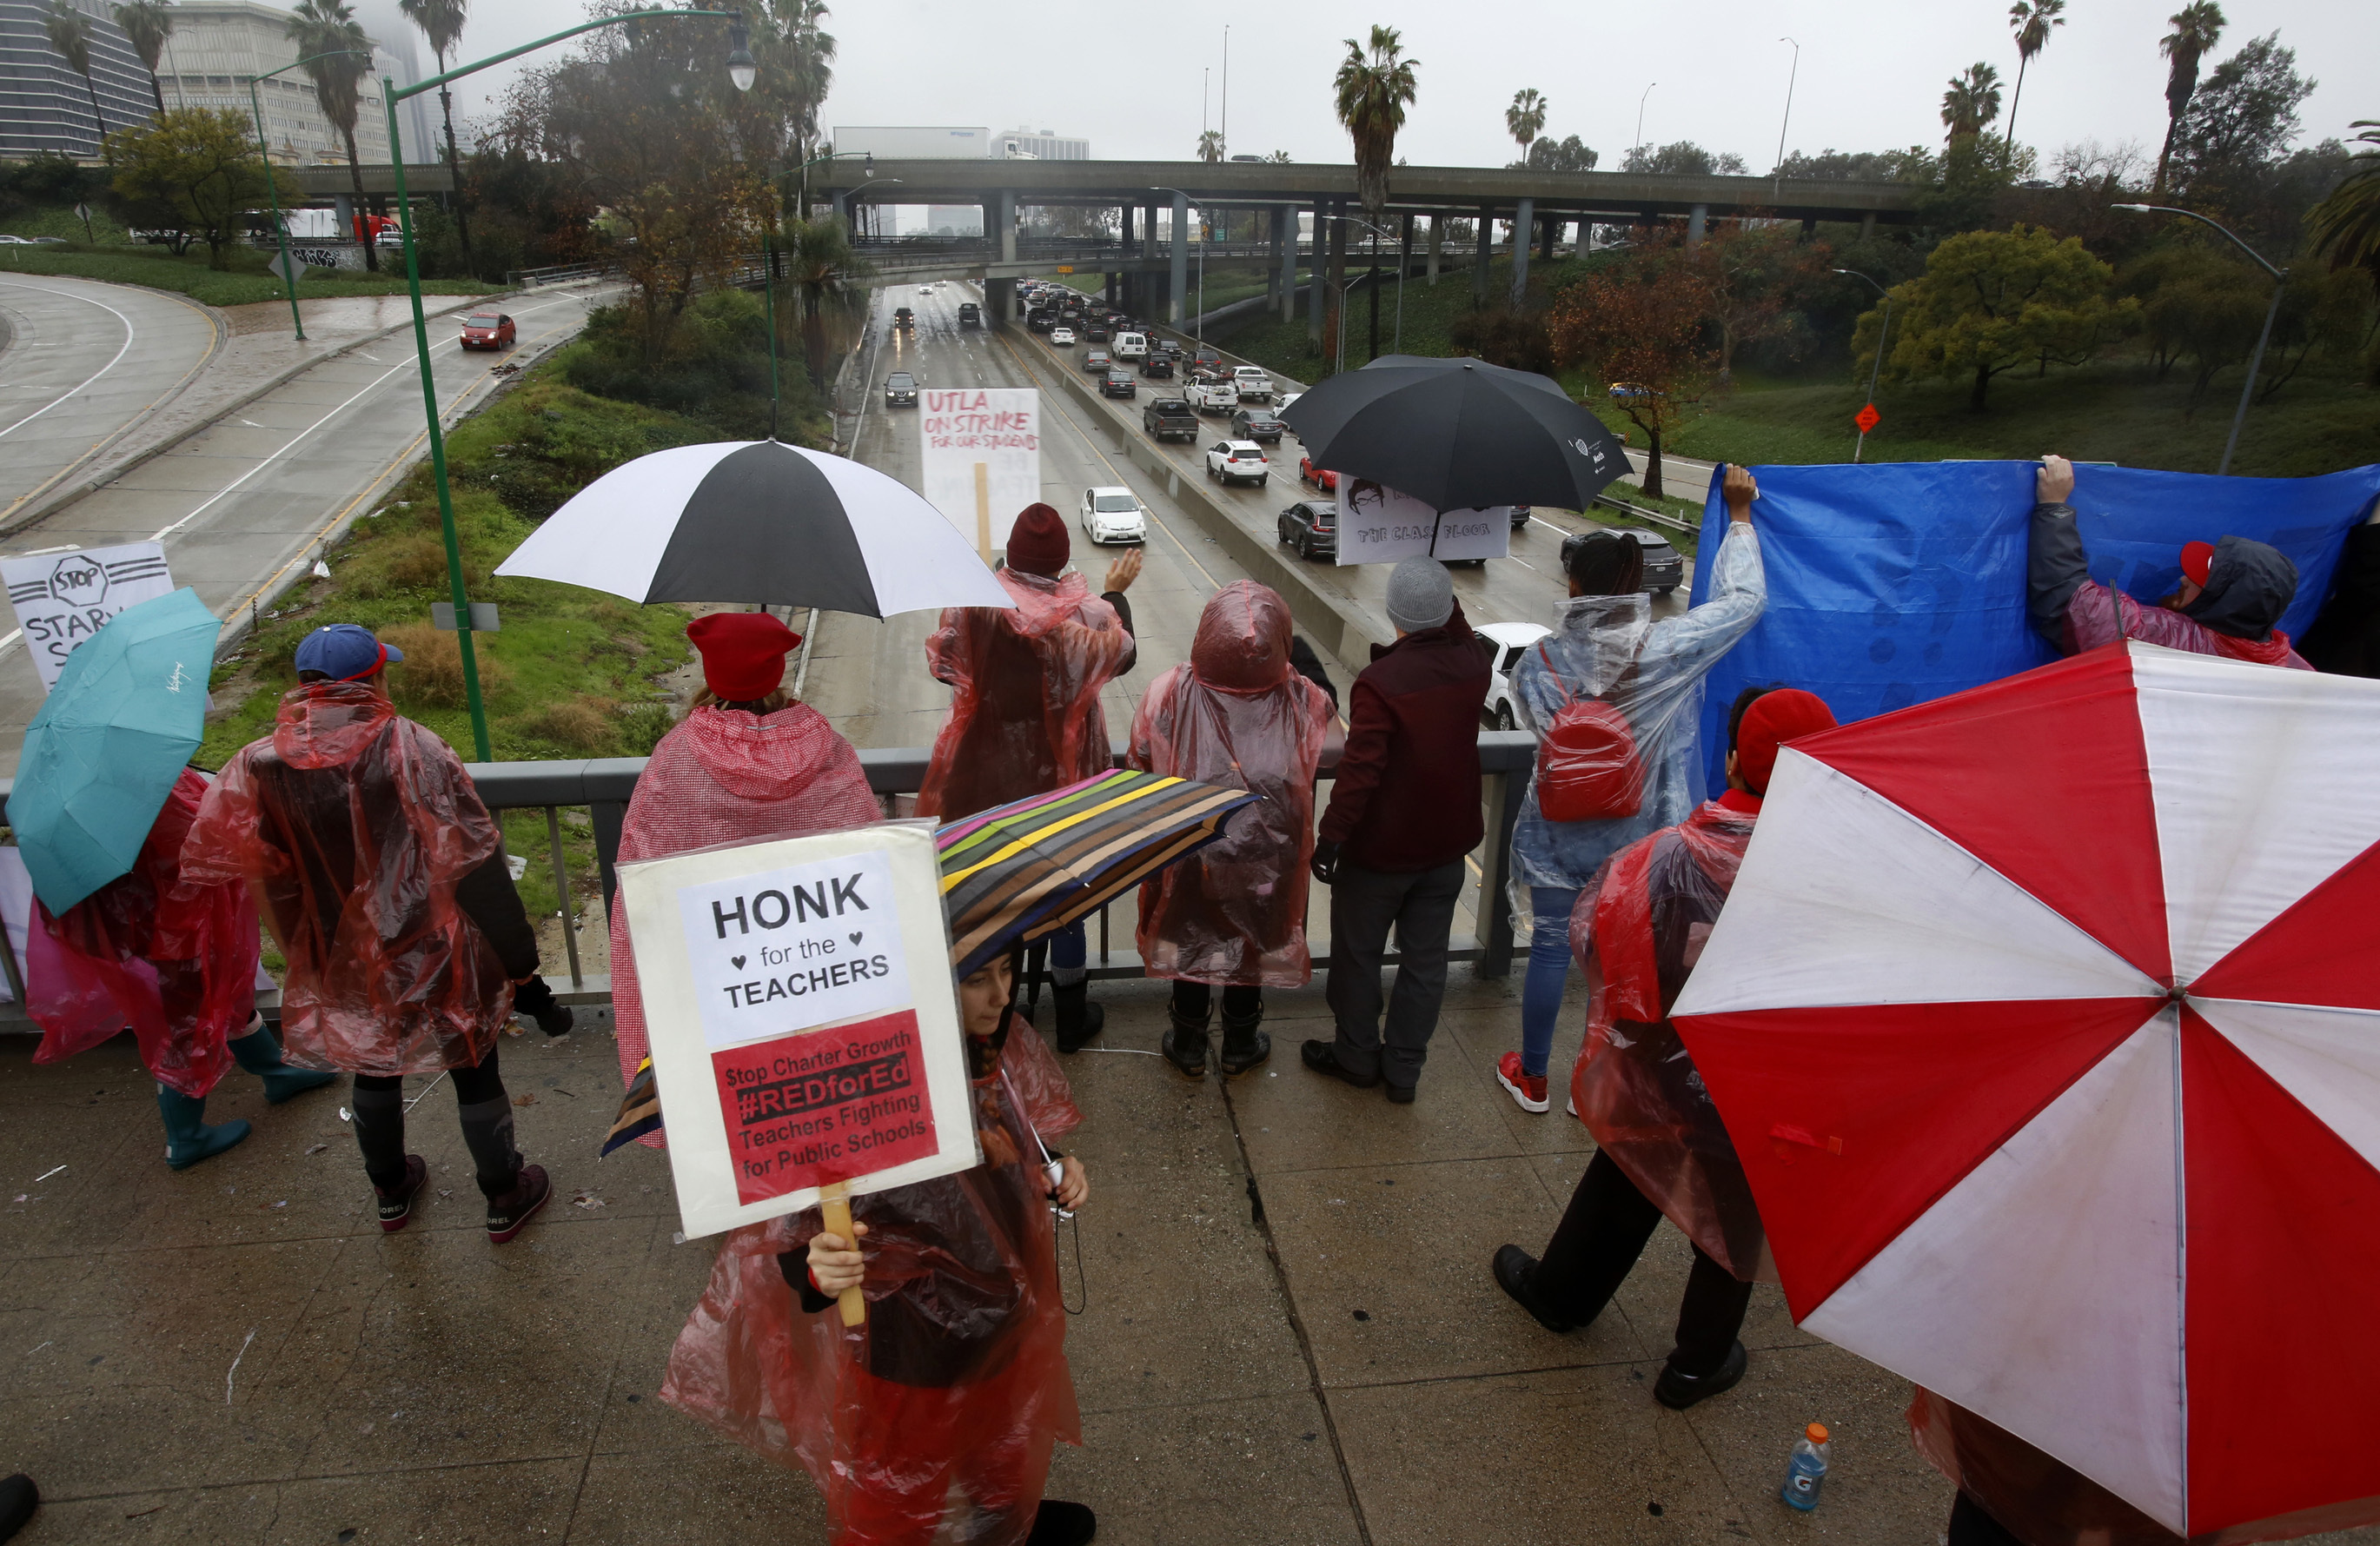 Los Angeles Unified School District educators picket over the Harbor Freeway downtown Los Angeles Thursday, Jan. 17, 2019. A new round of contract negotiations began between Los Angeles school district officials and a teachers union as thousands of educators picketed in the rain. The announcement that the two sides were sitting down Thursday for the first time in nearly a week didn't indicate whether any new contract offers would be on the table. Union officials tempered expectations, saying a quick deal was unlikely. District officials have said teacher demands could bankrupt the school system.  (AP Photo/Damian Dovarganes)